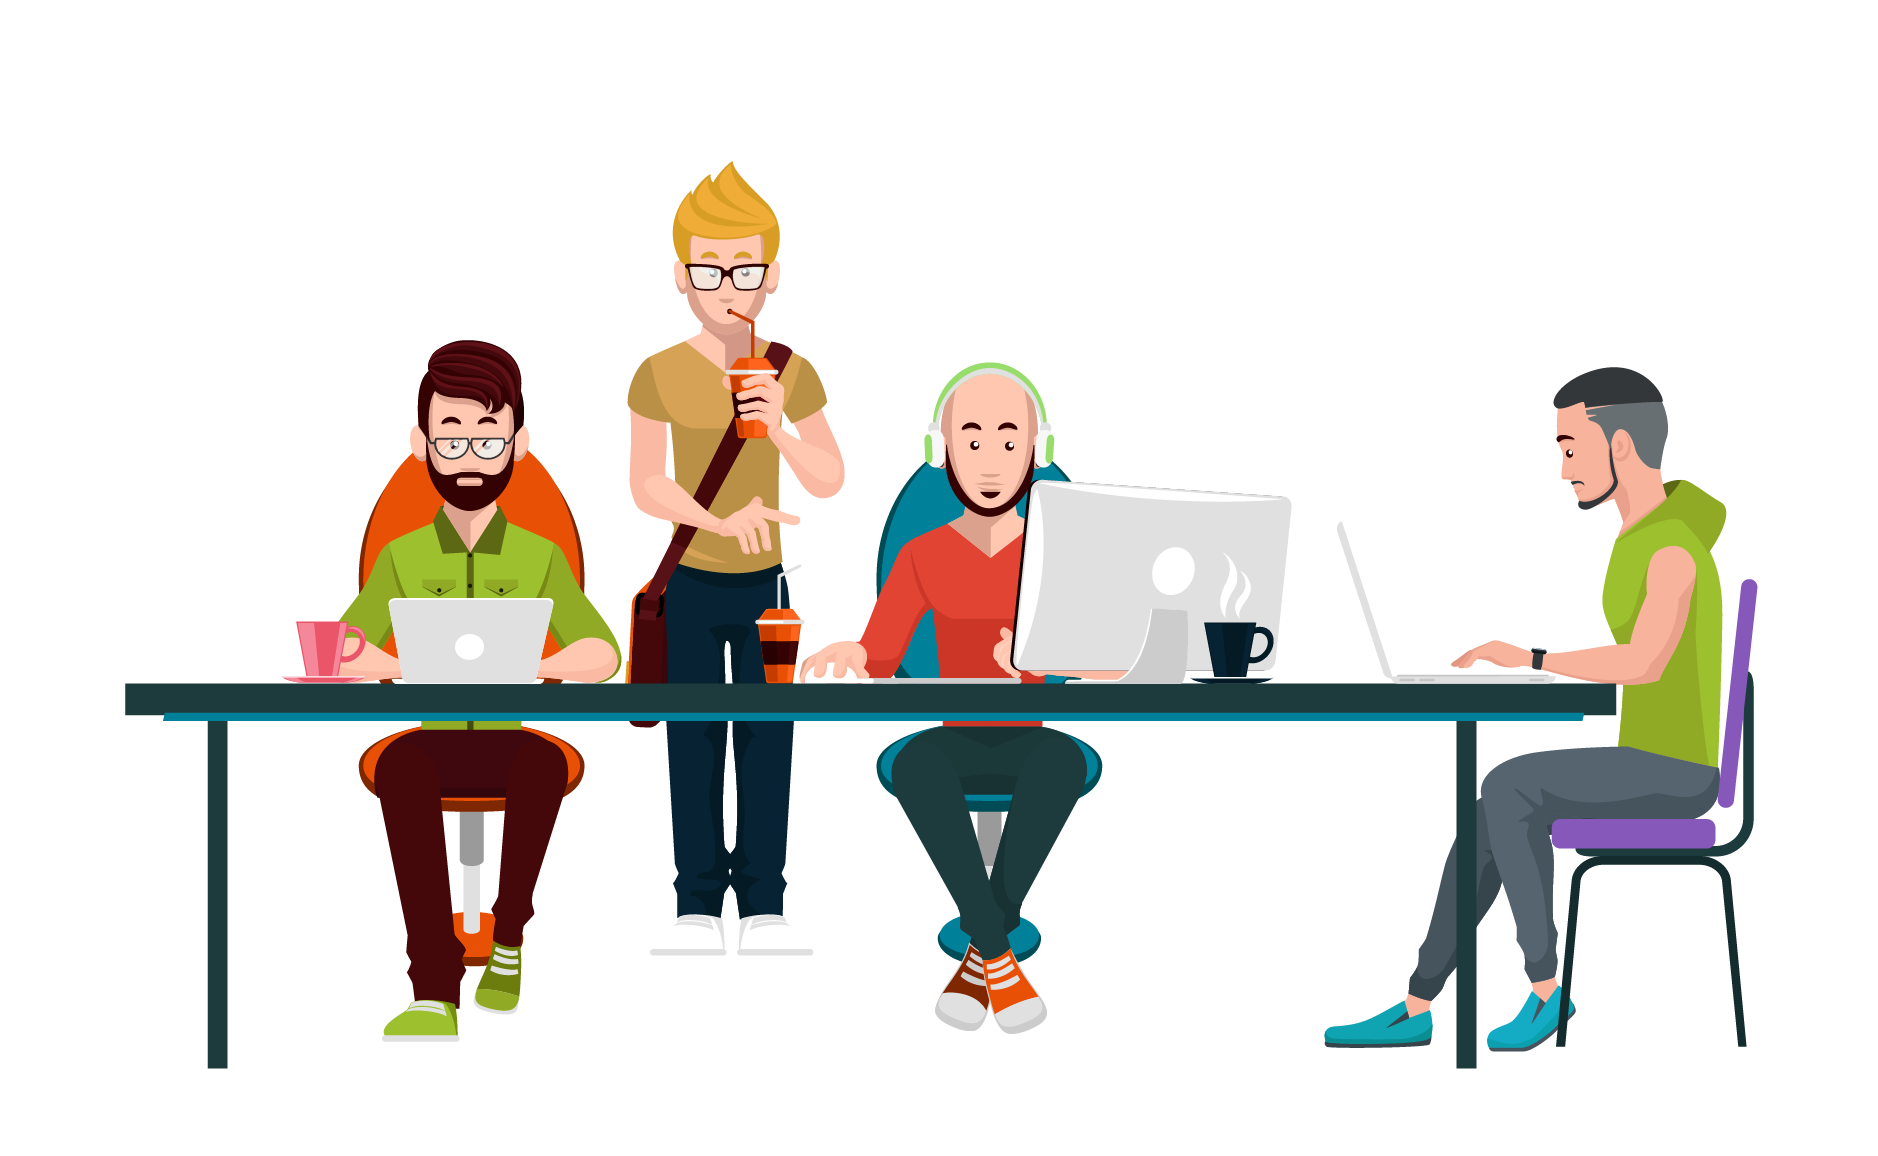 Collaboration clipart business organization. Organizational culture coworking workplace